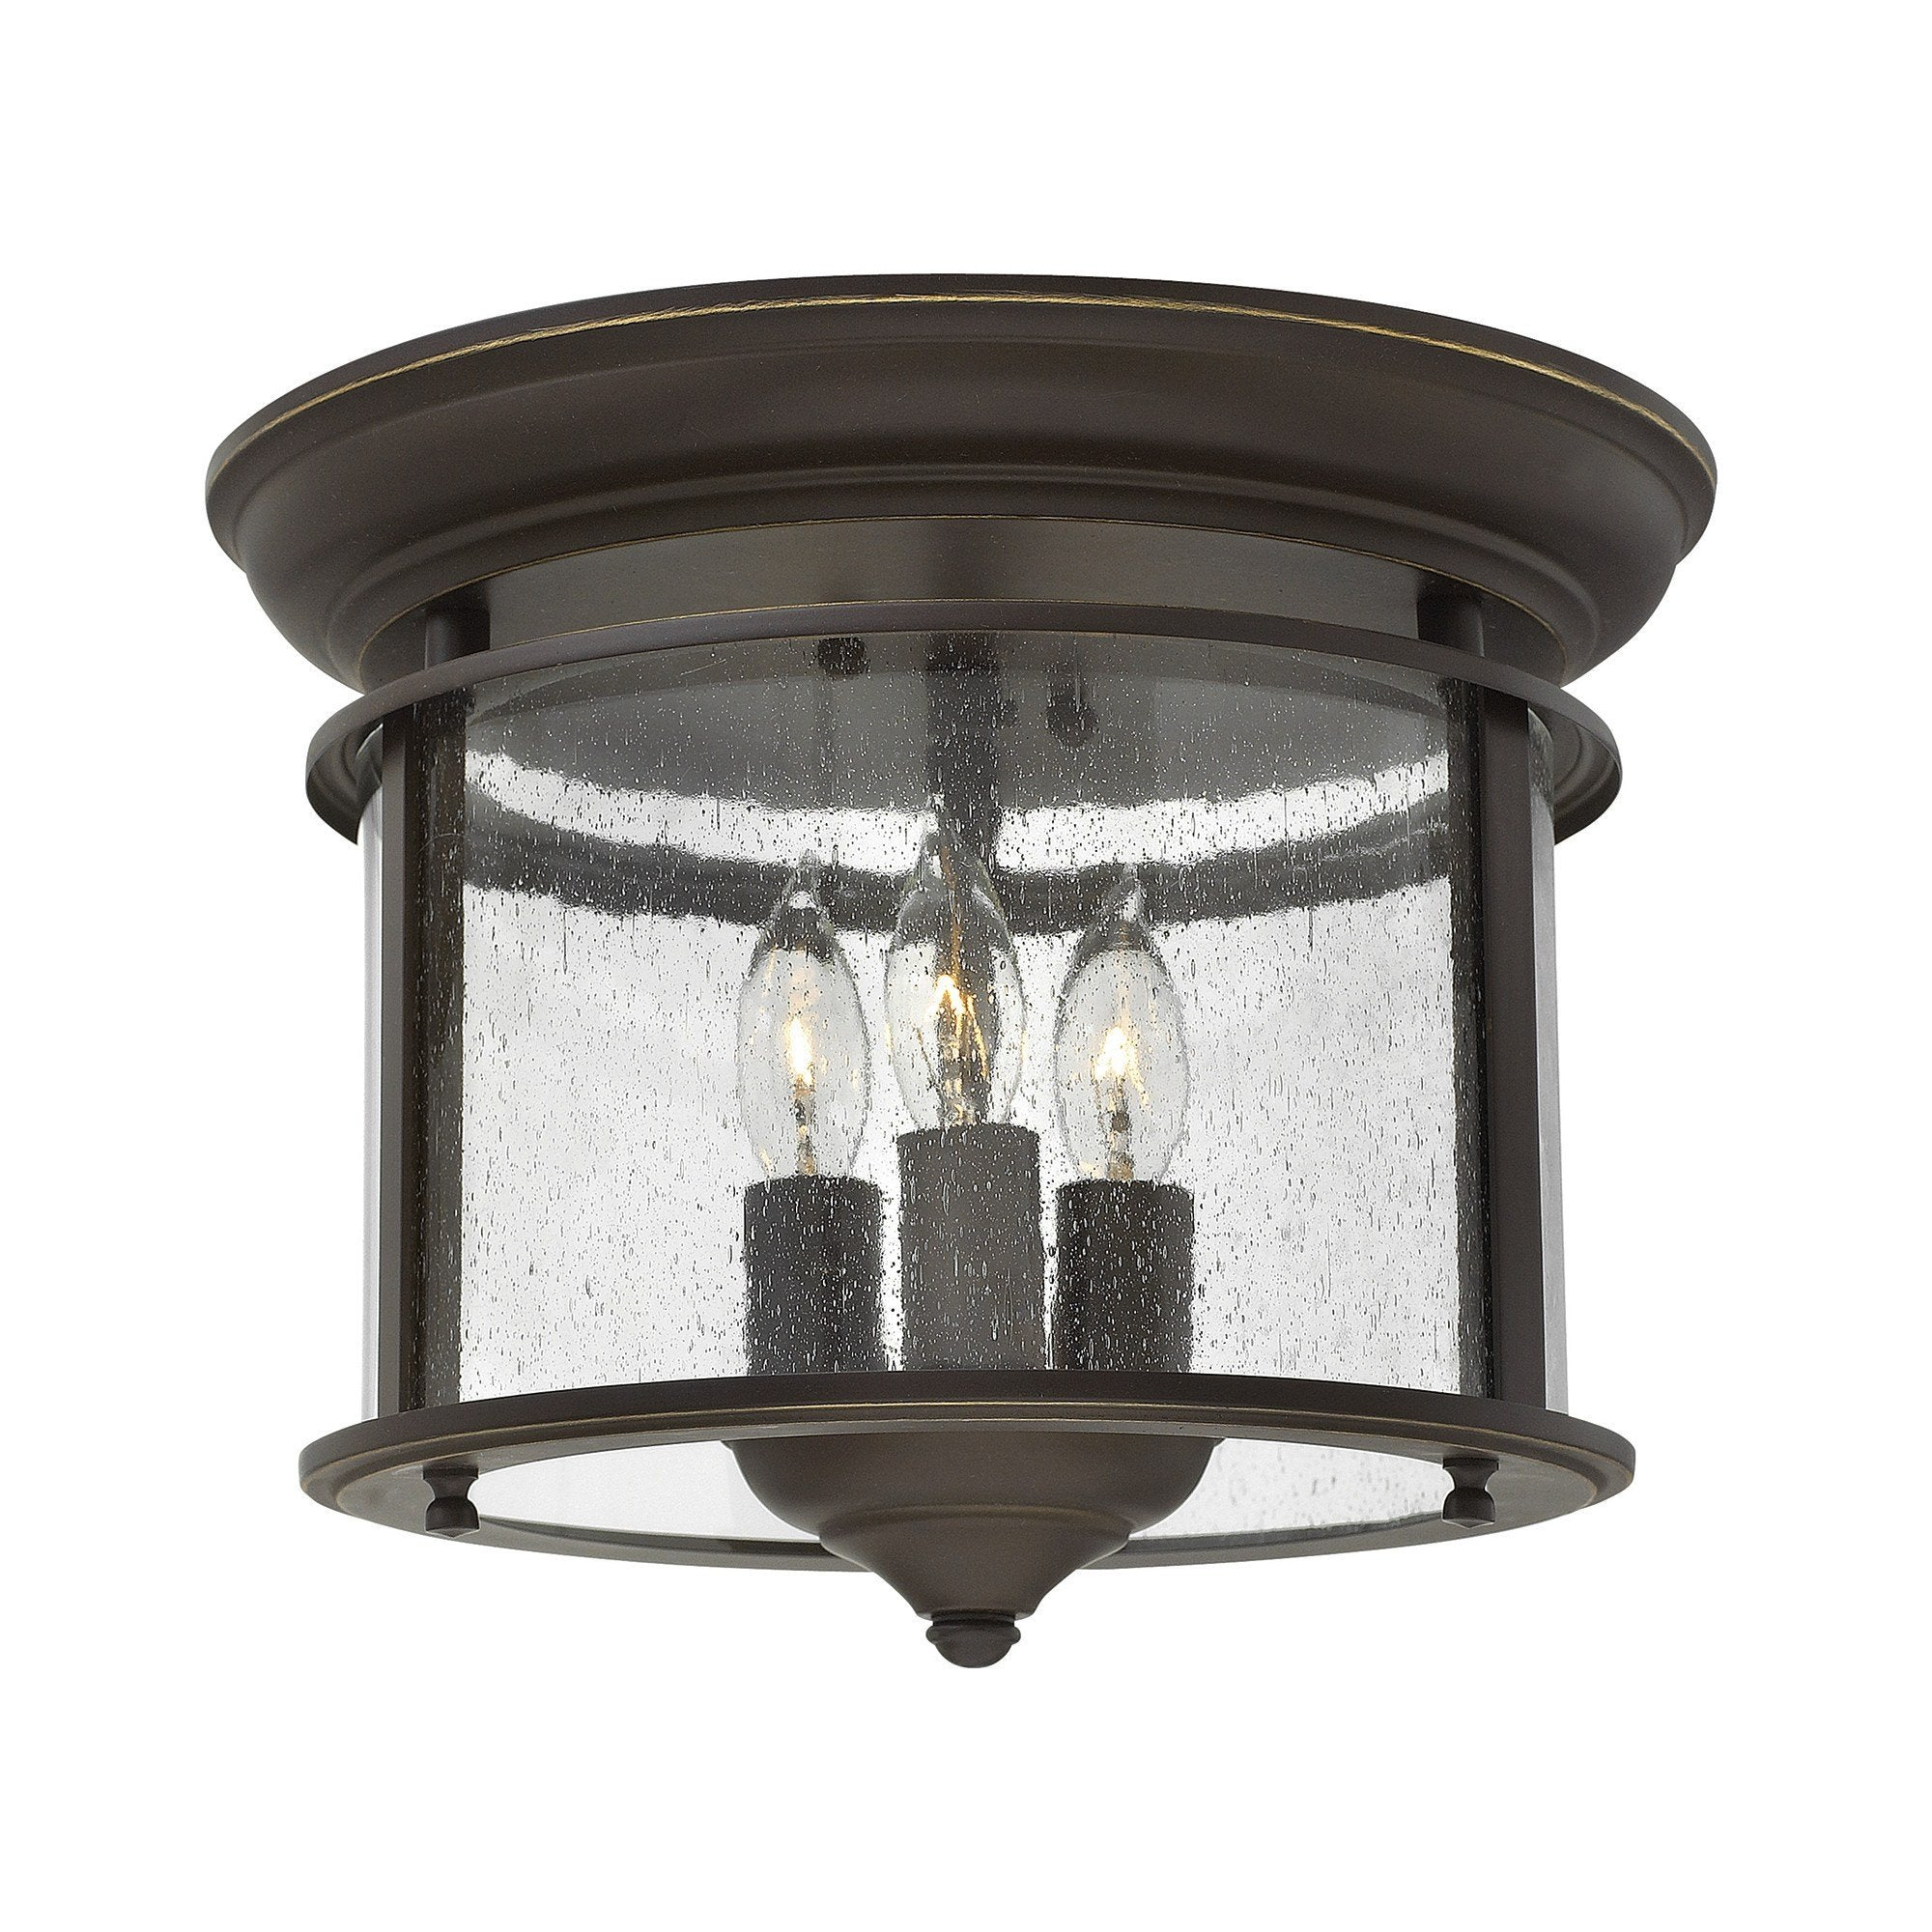 Hinkely Gentry Flush Mount - London Lighting - 3